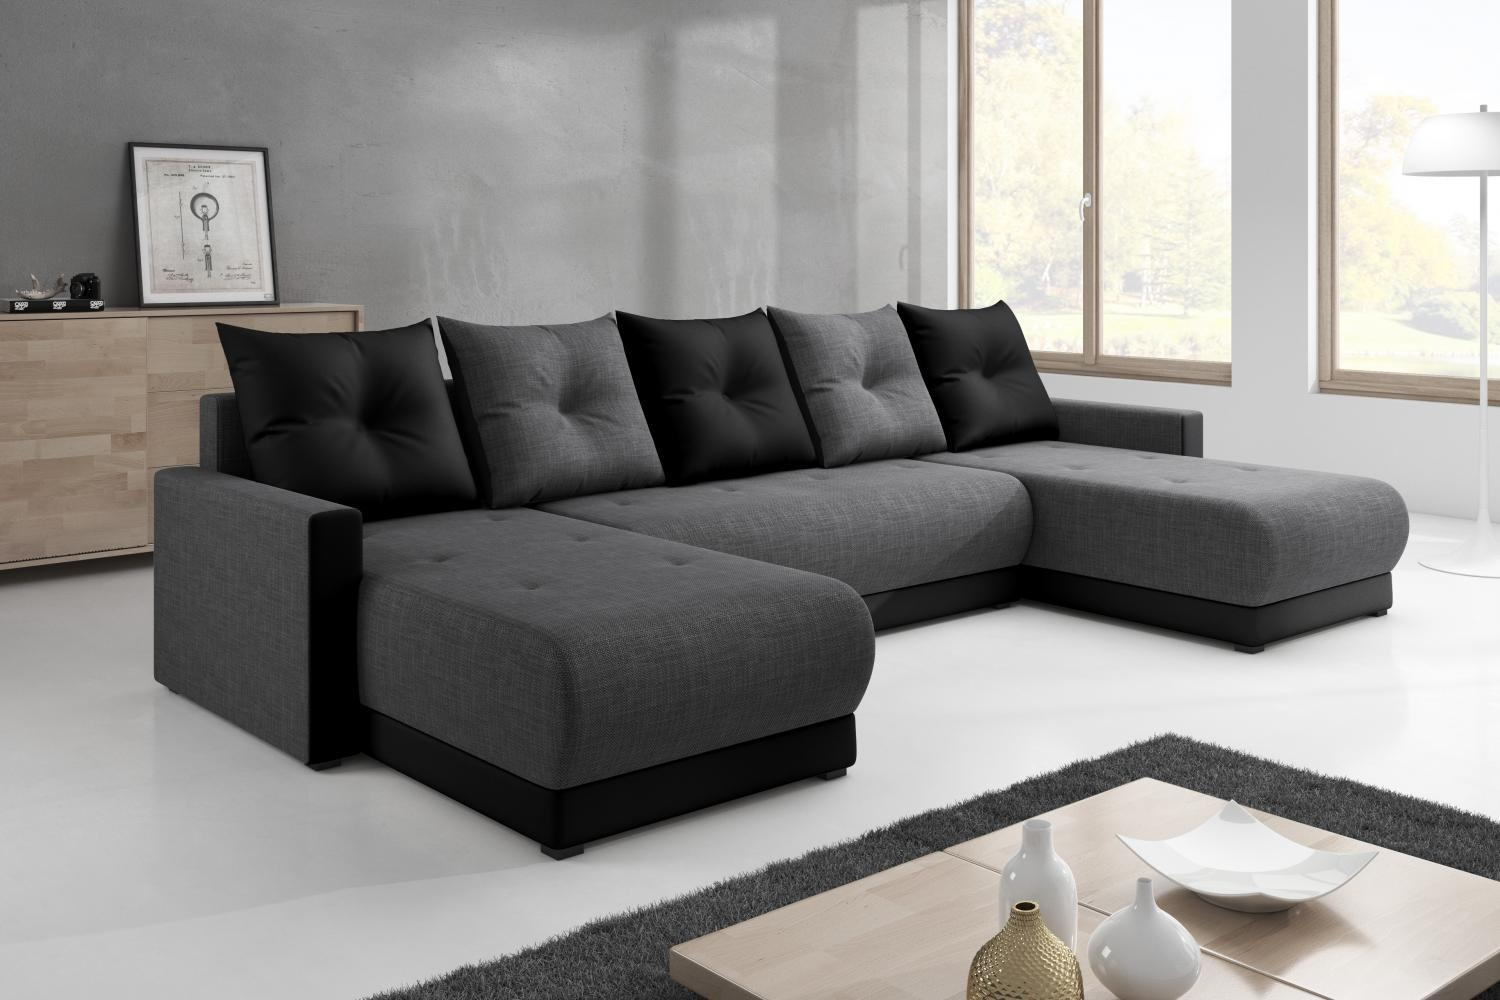 Furniturejersey Pertaining To C Shaped Sofa (Image 13 of 20)